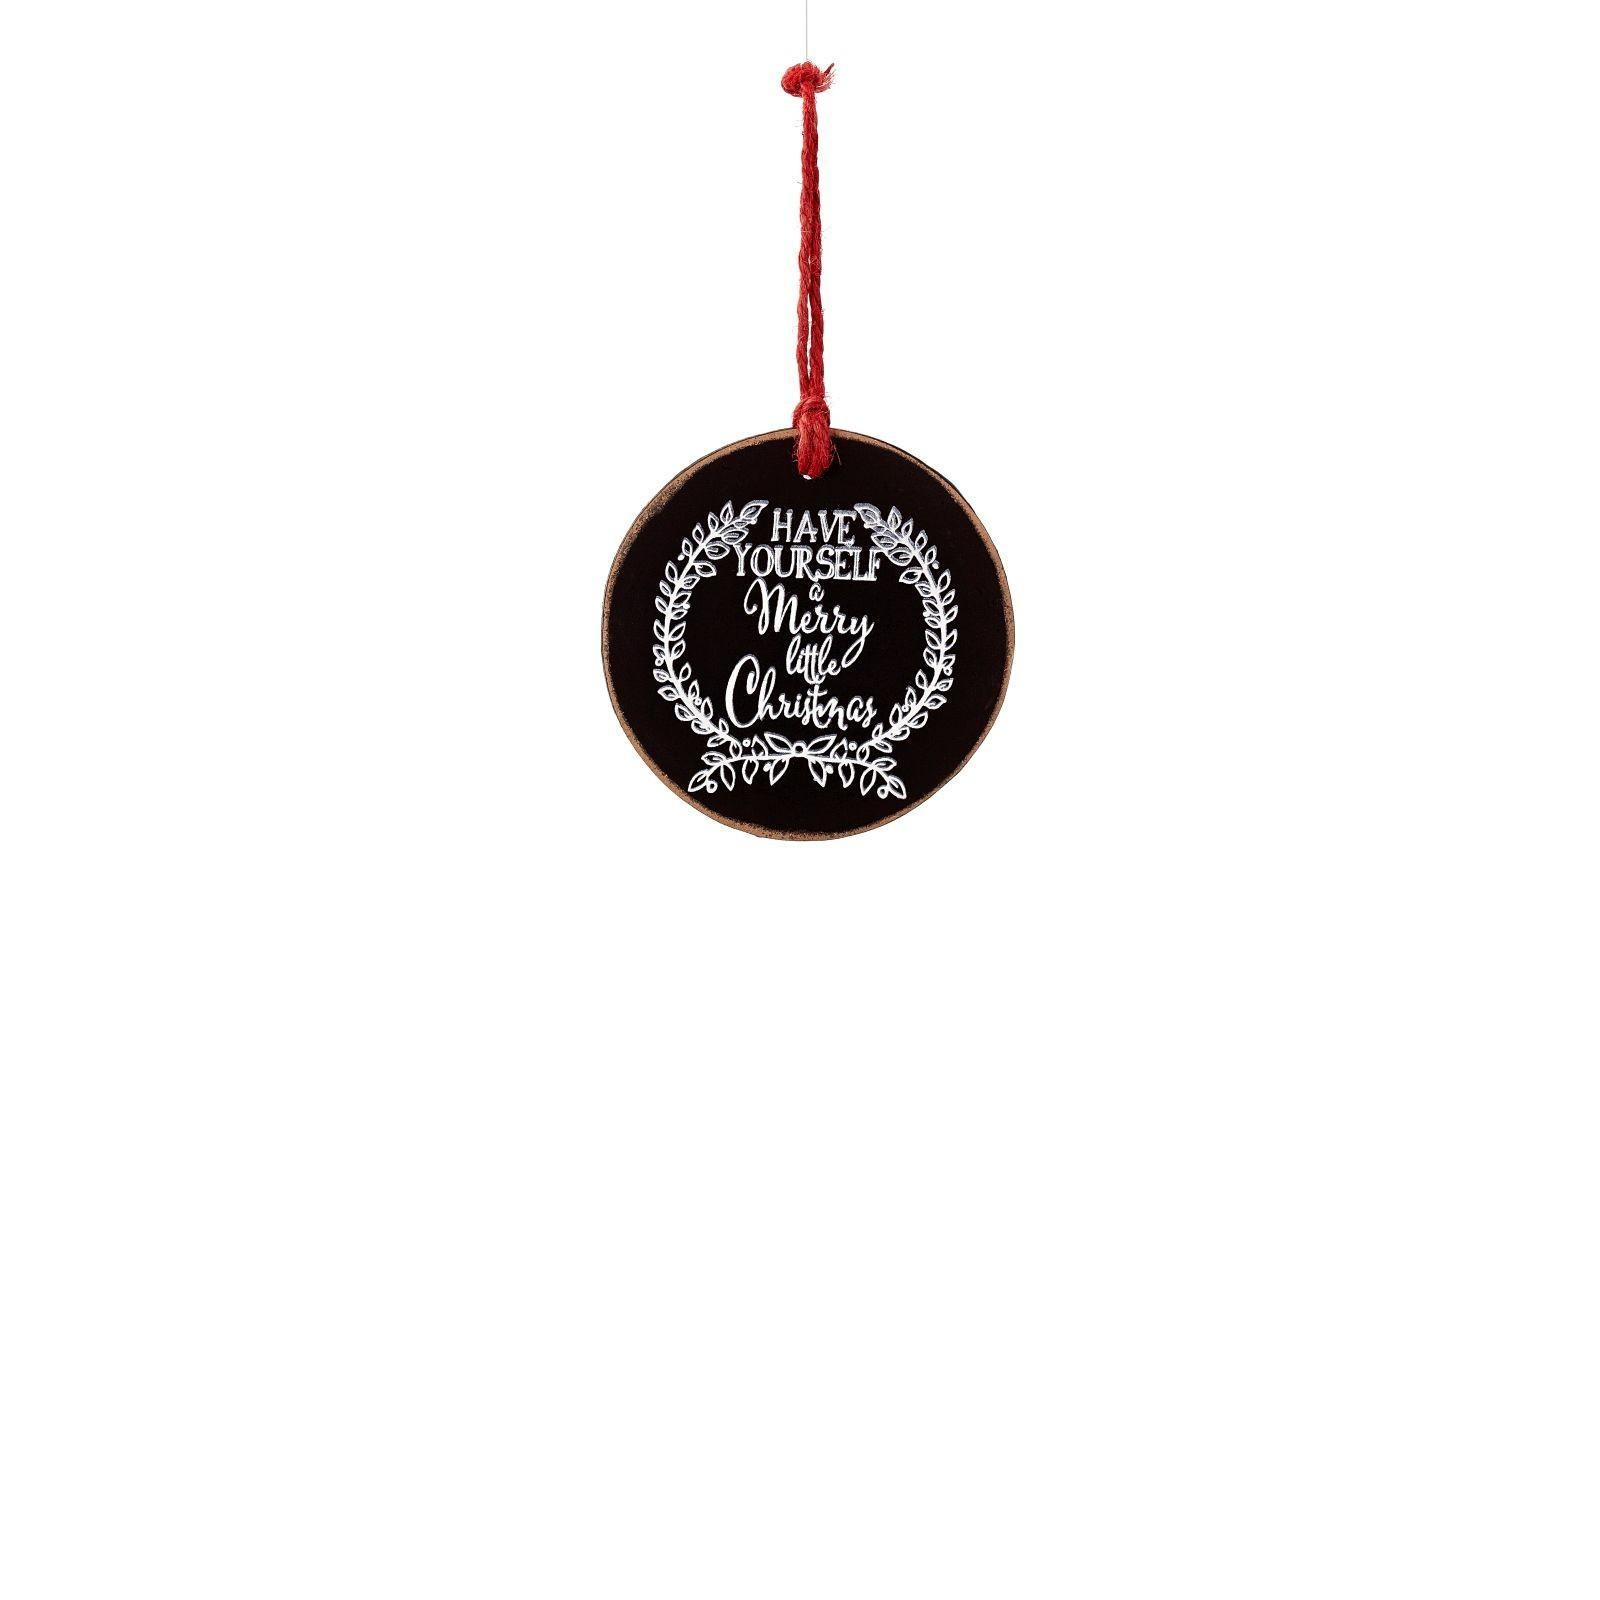 Teters Floral Products Round Chalkboard Christmas Ornament